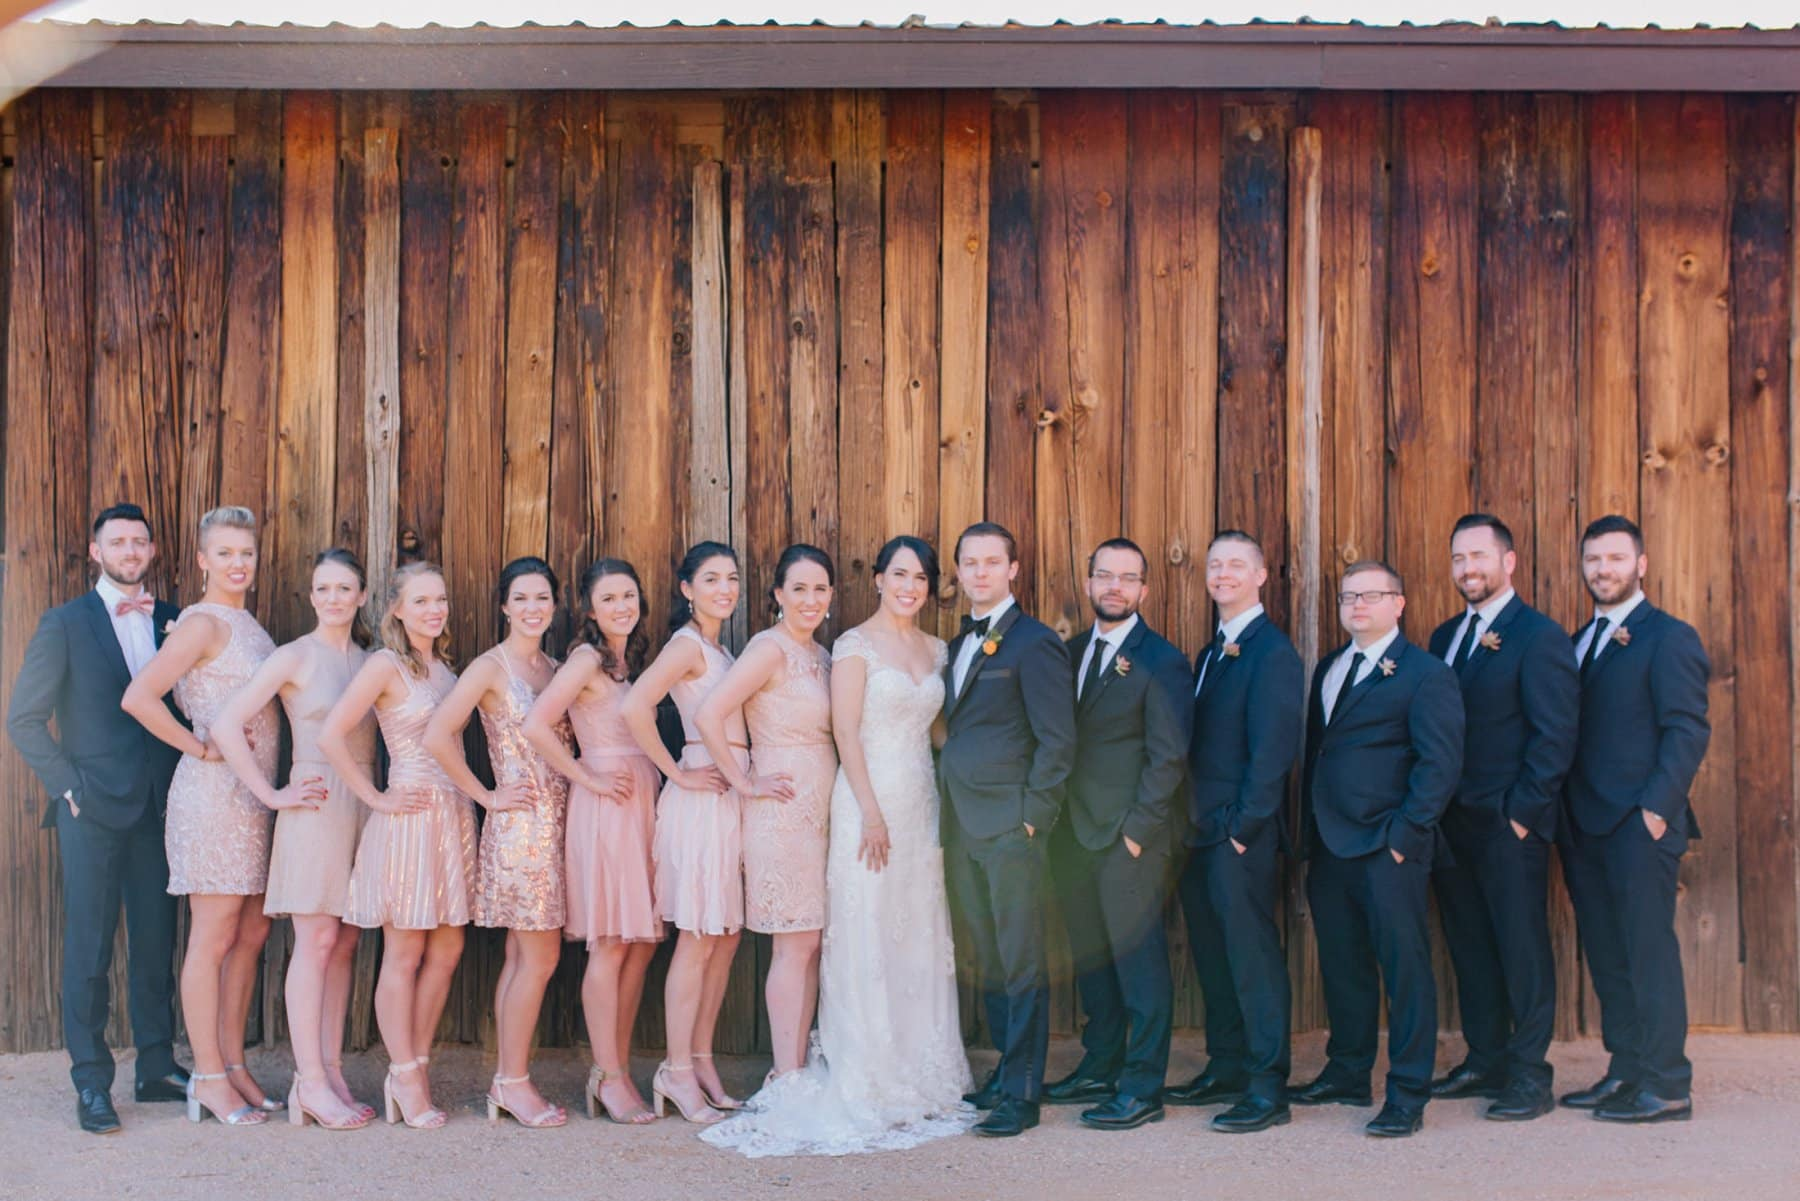 Desert Foothills wedding barn wedding party